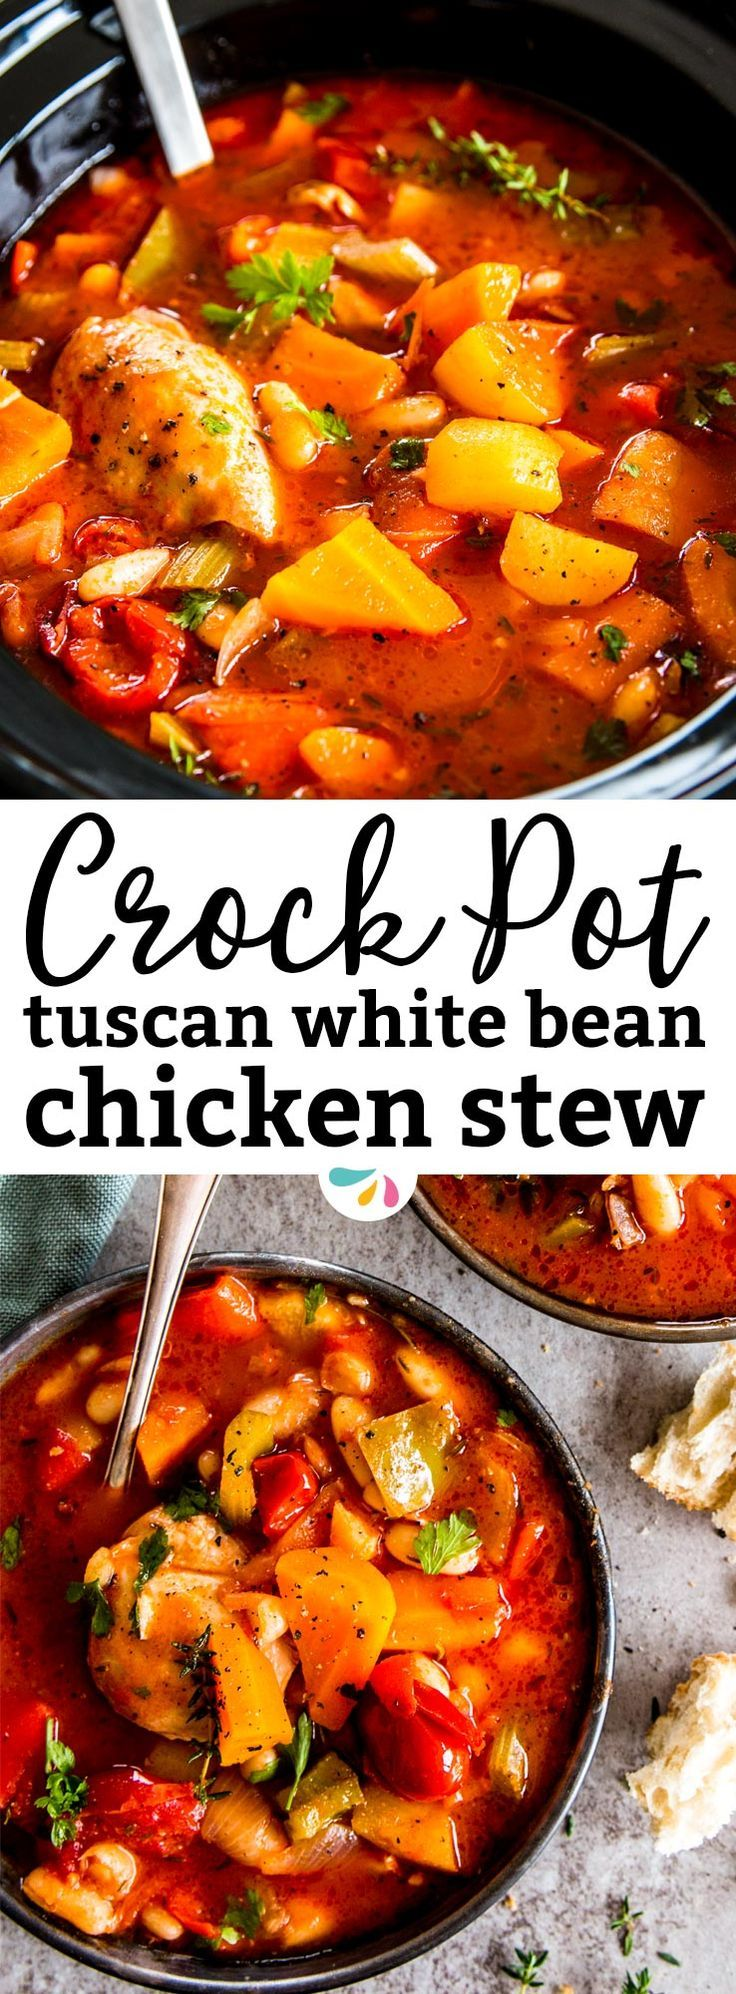 This is a healthy chicken stew you can make in your crockpot! It has rustic Tuscan flavors and makes a hearty red tomato based sauce. This is simple homemade comfort food at its best! Let the slow cooker do the work for you and enjoy a heart warming old f http://healthyquickly.com/55-supreme-vegan-recipes-dinner/